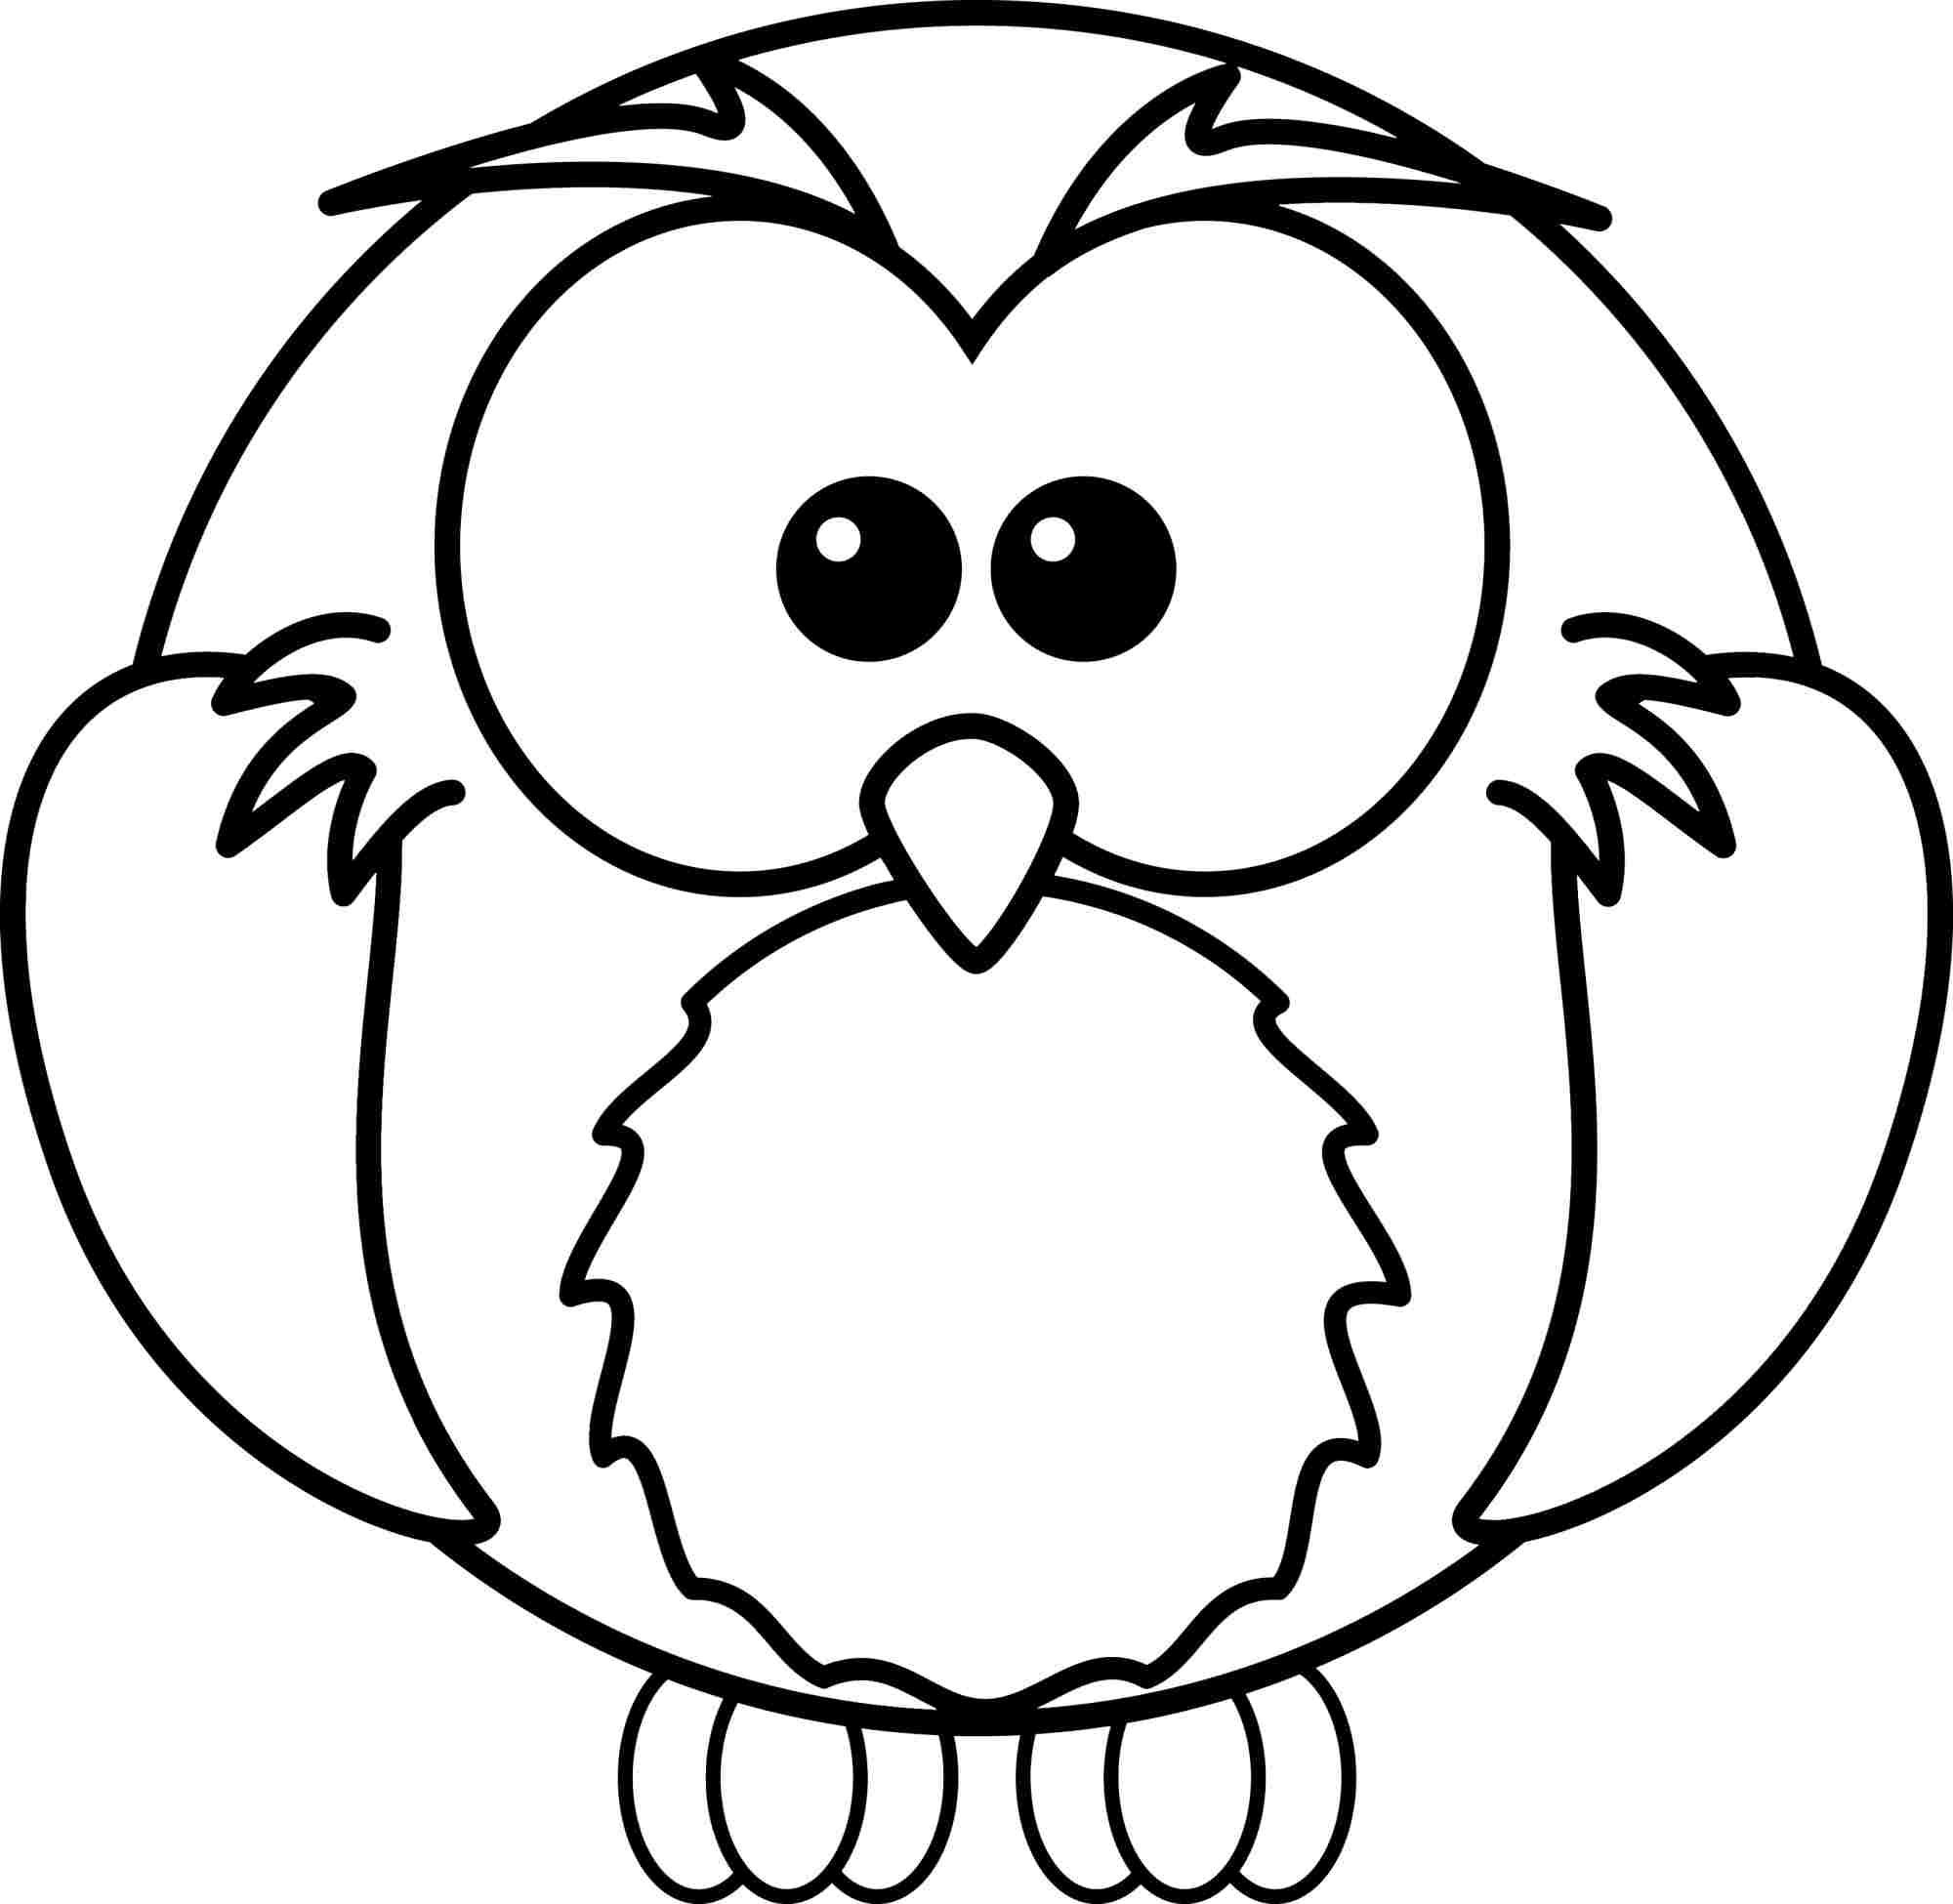 Animal Owl Coloring Sheets Free For Little Kids 8023